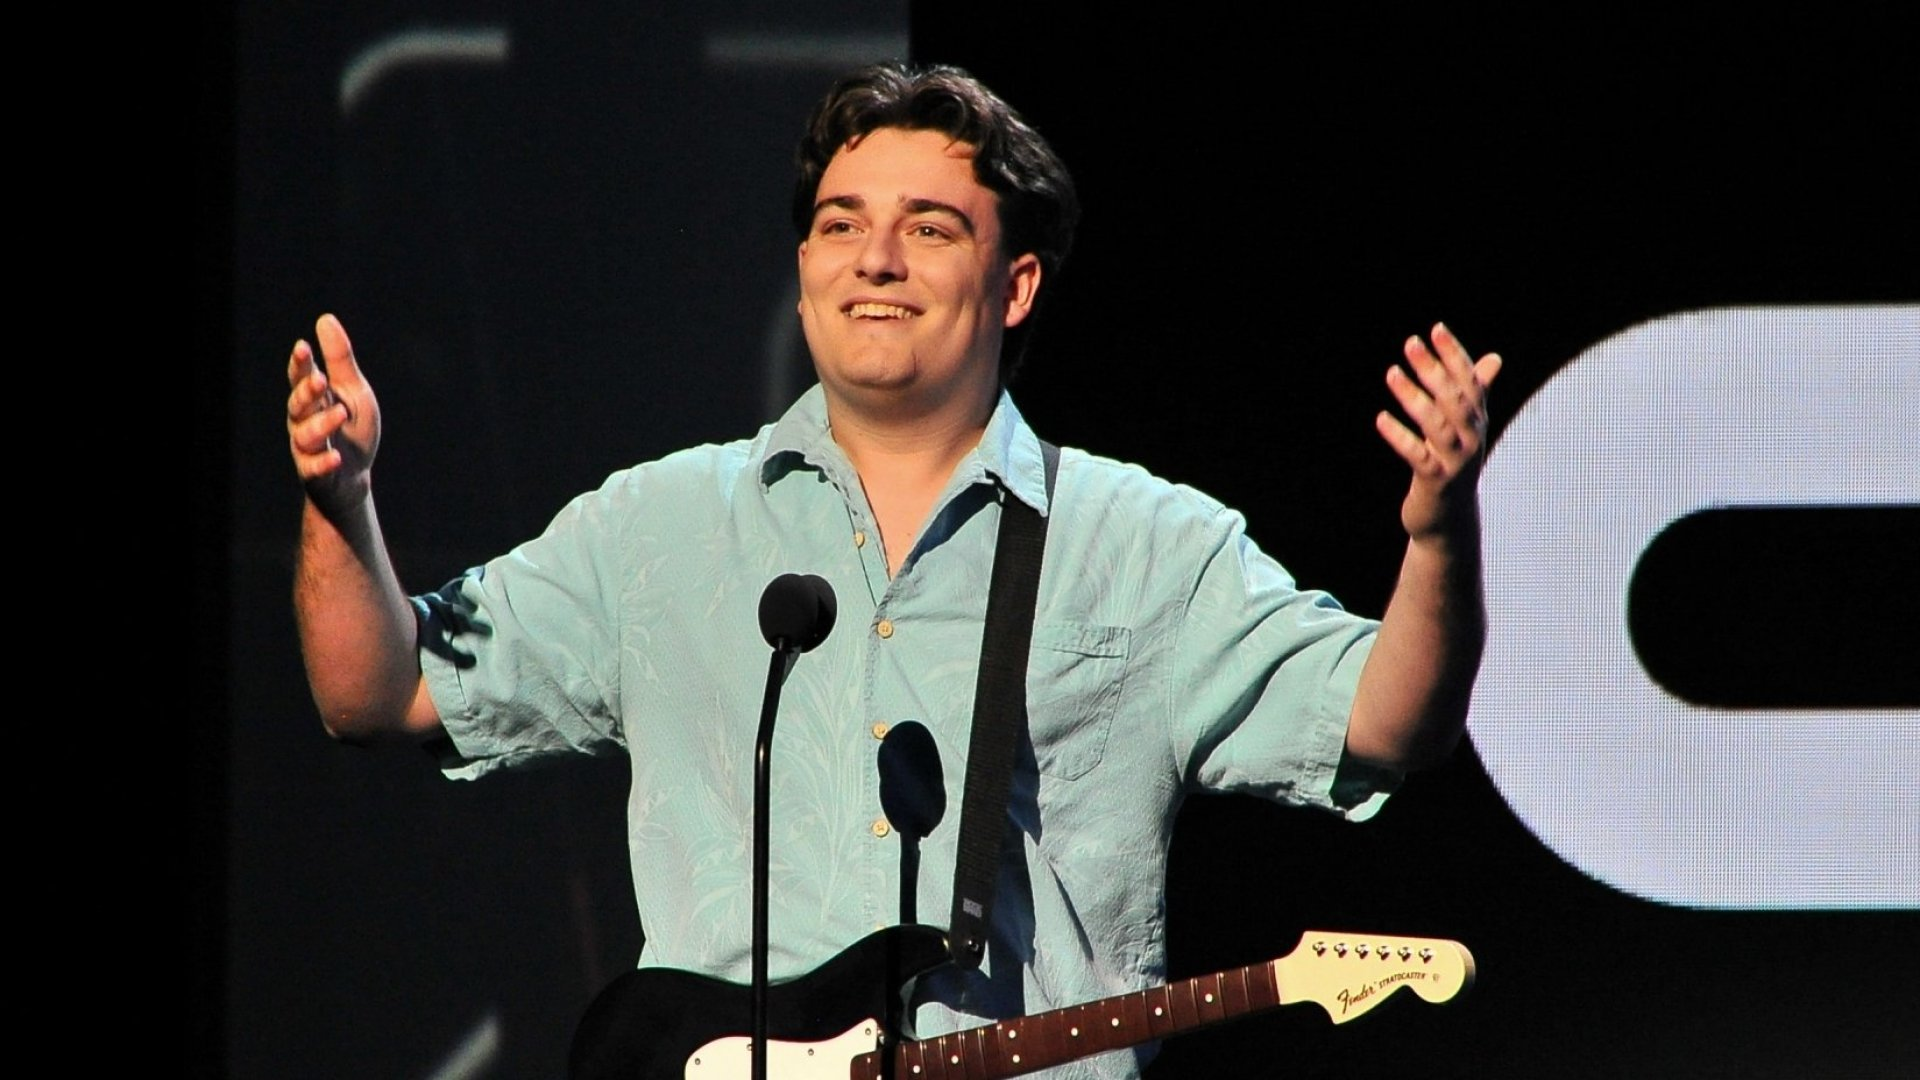 Palmer Luckey Discusses What's Next for Oculus Rift